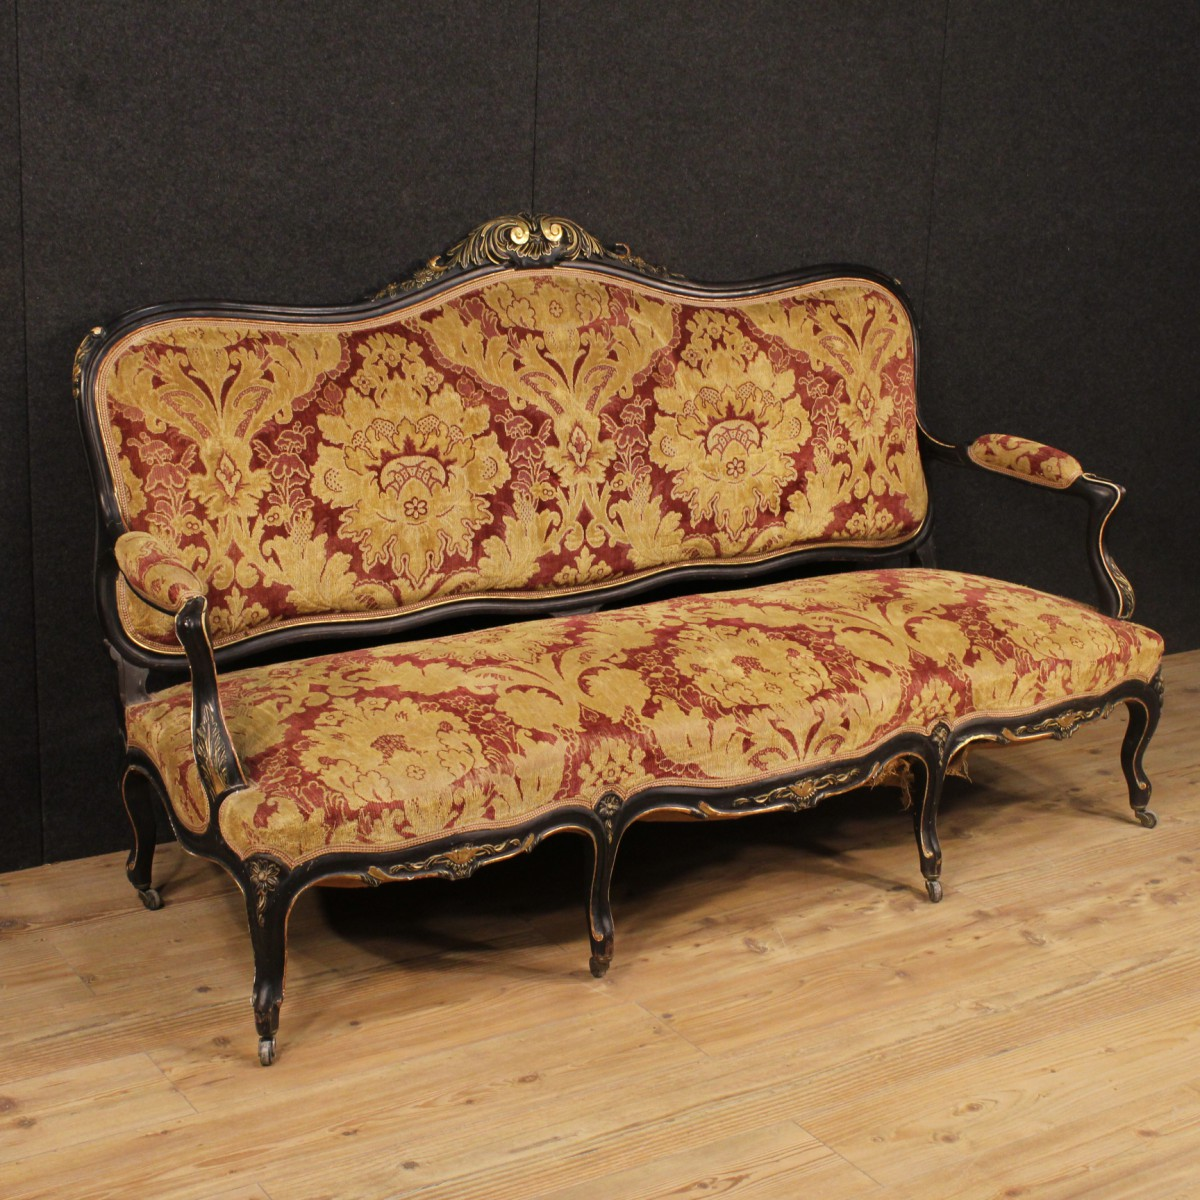 French Sofa In Damask Velvet Of The Early 20th Century